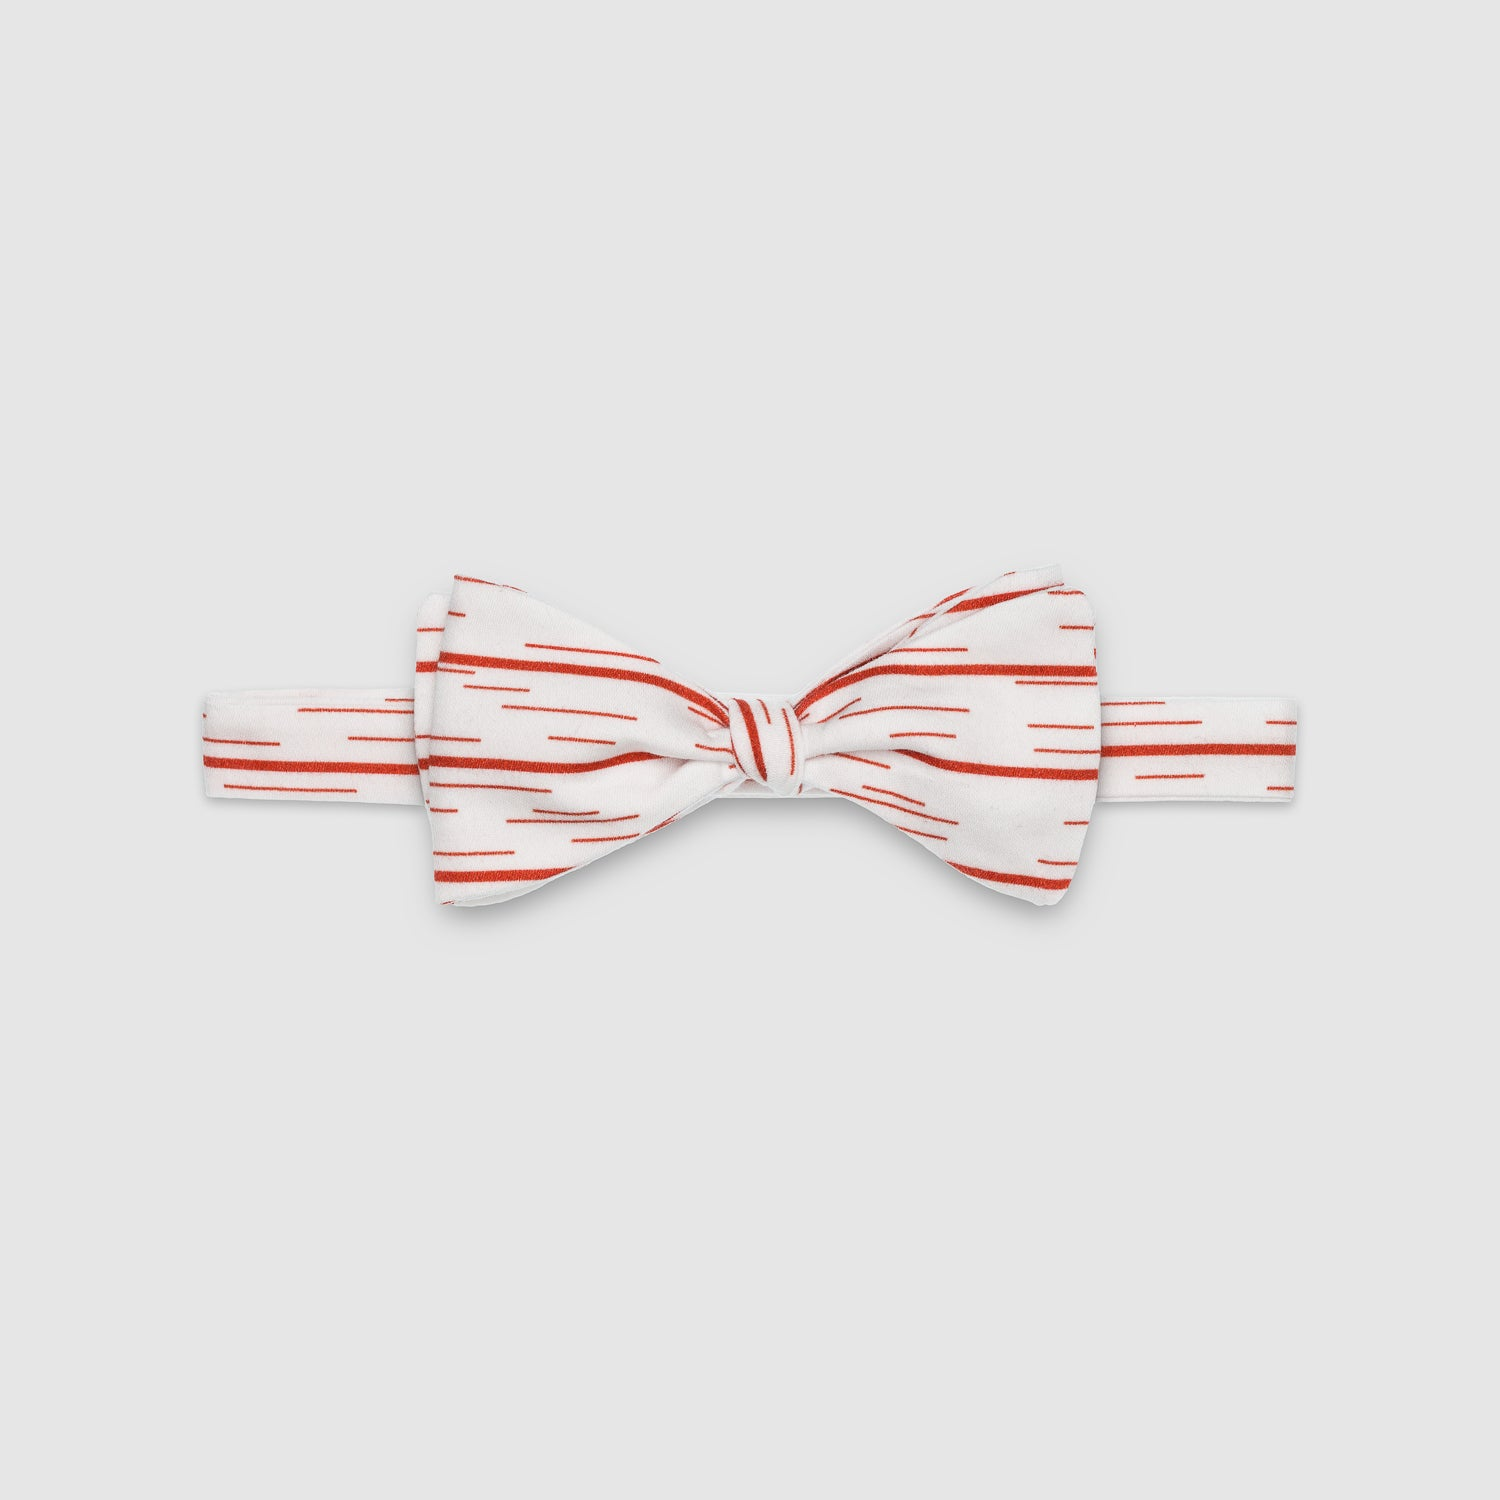 PITT – the bow tie